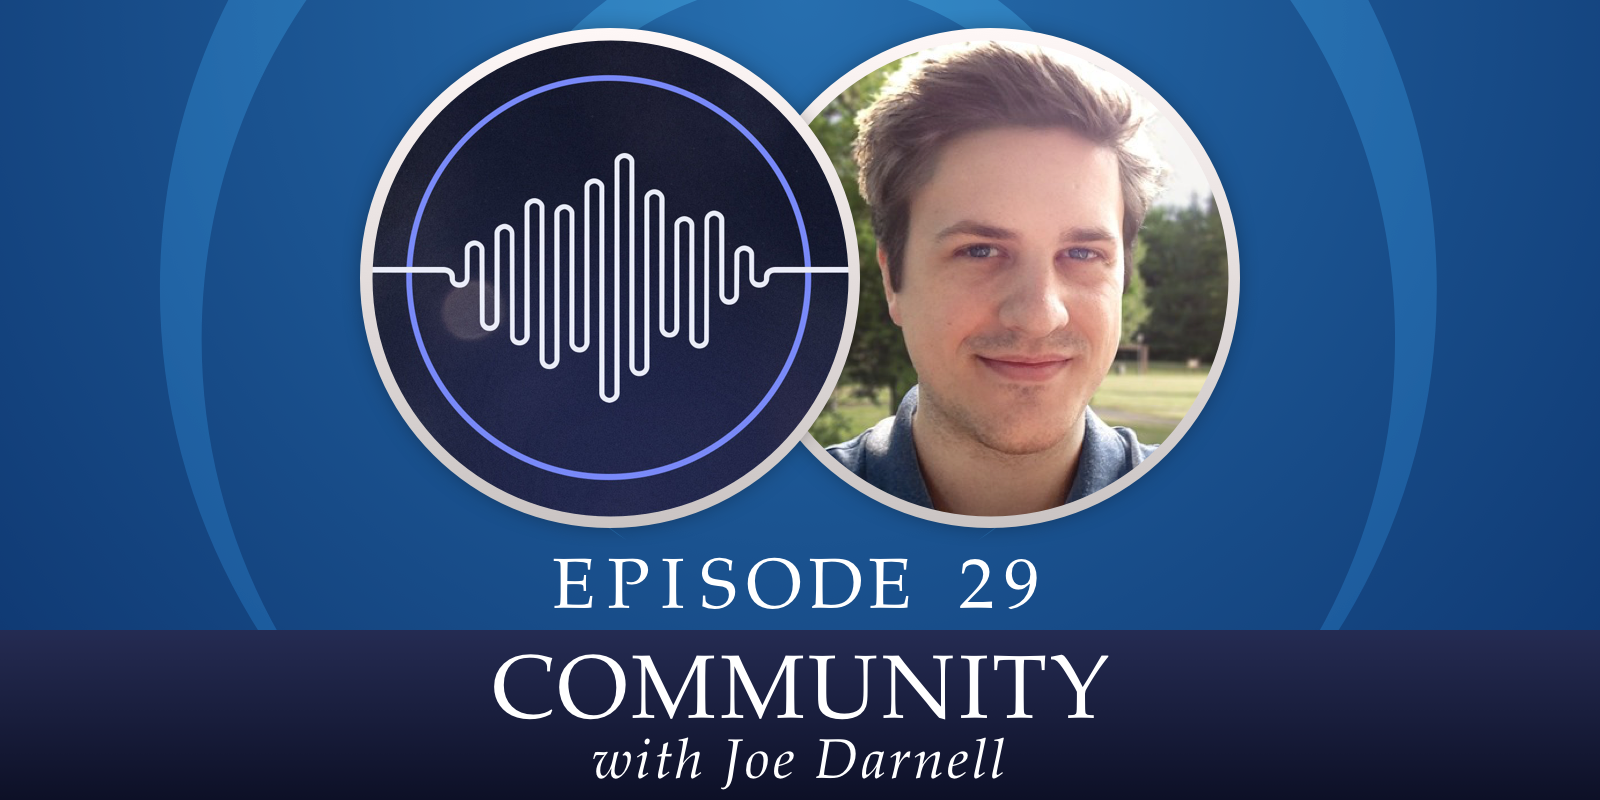 Episode 29: Community, with Joe Darnell